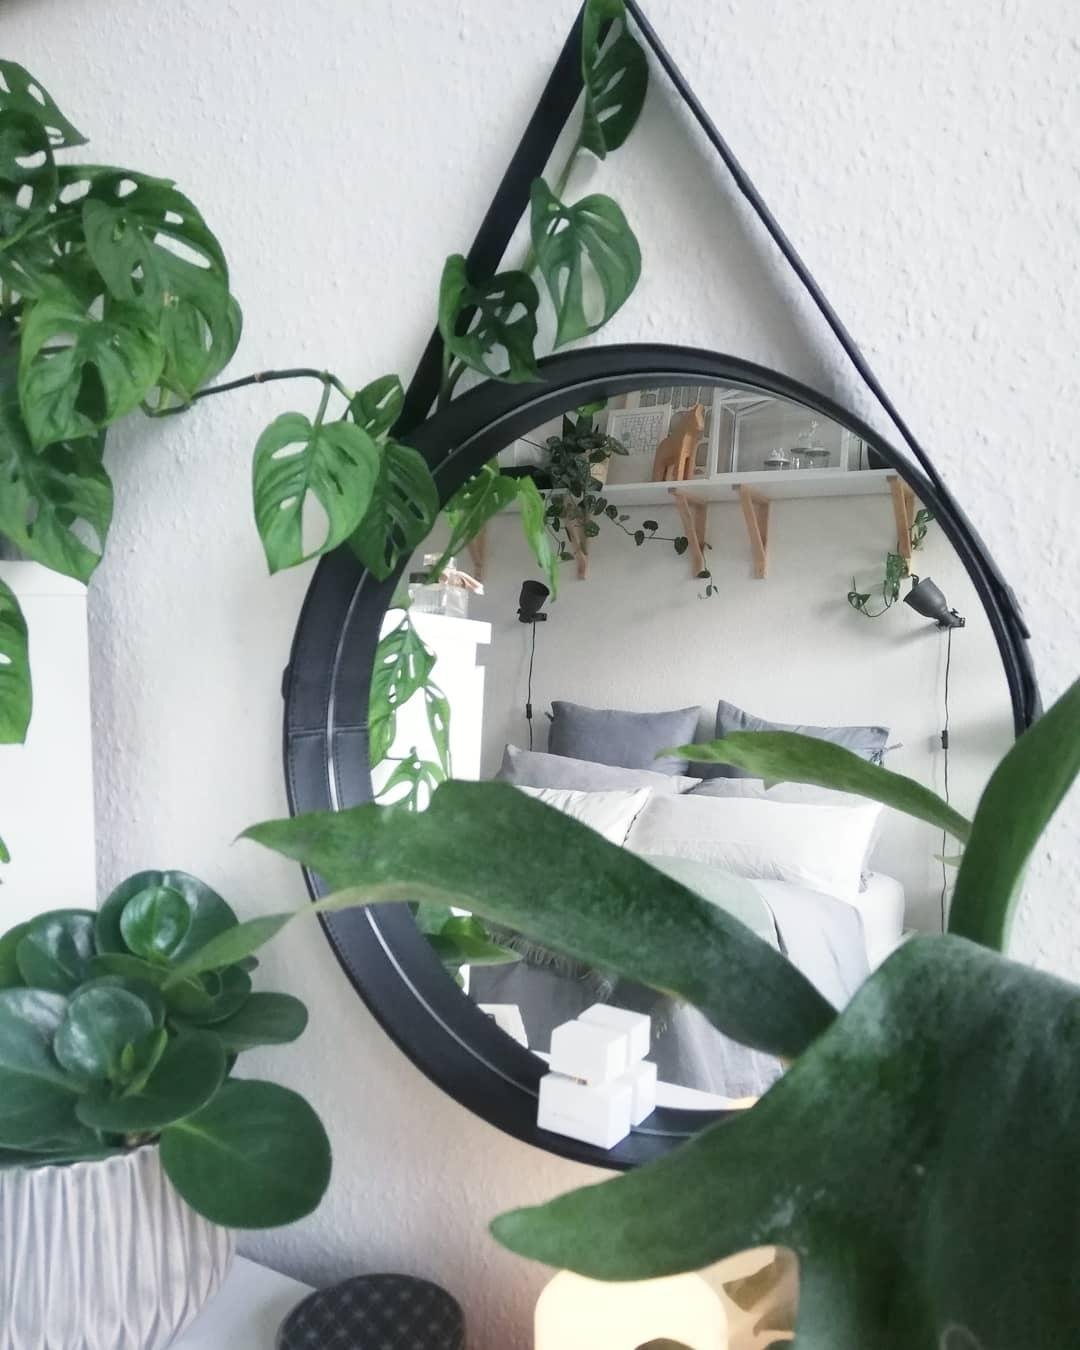 Durchblick